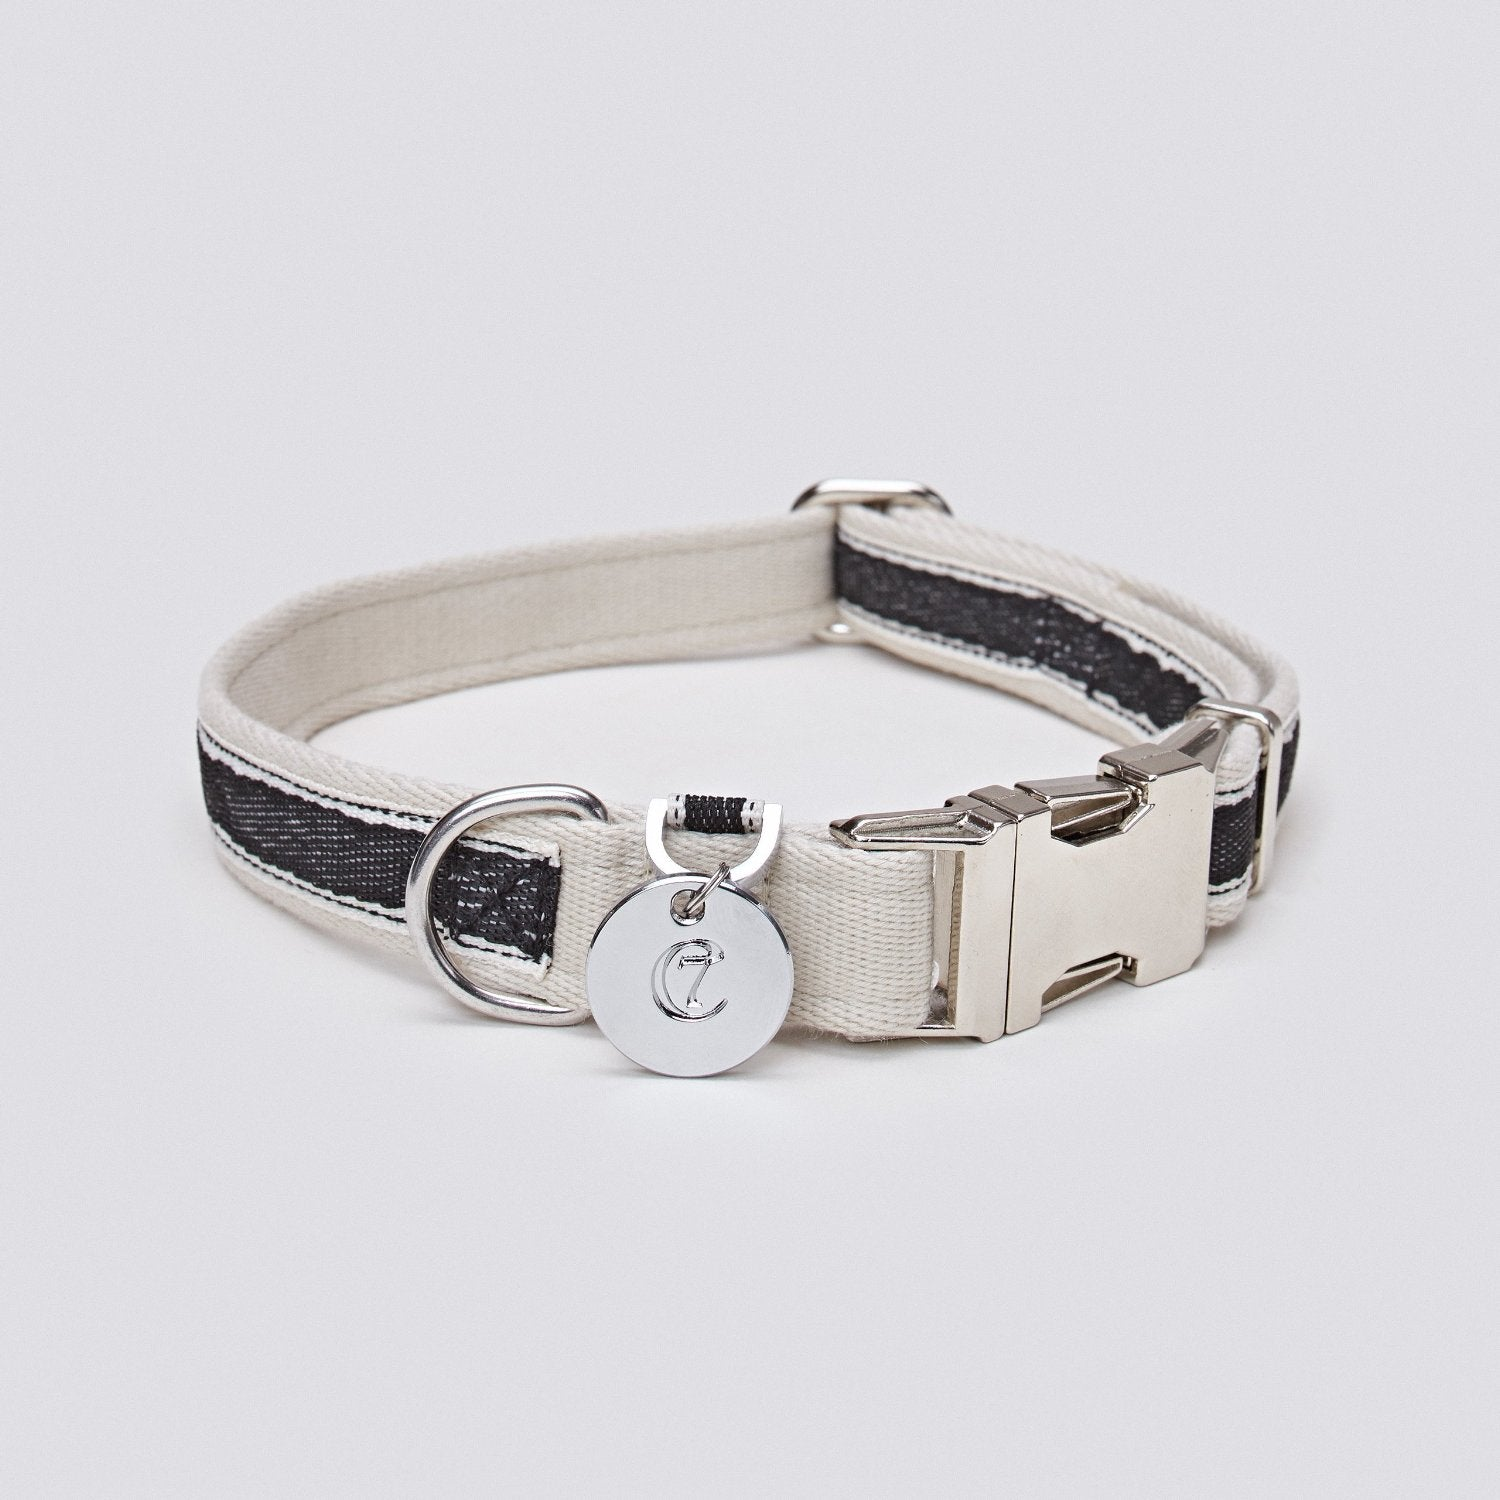 Cloud7 Hugo Black Dog Collar